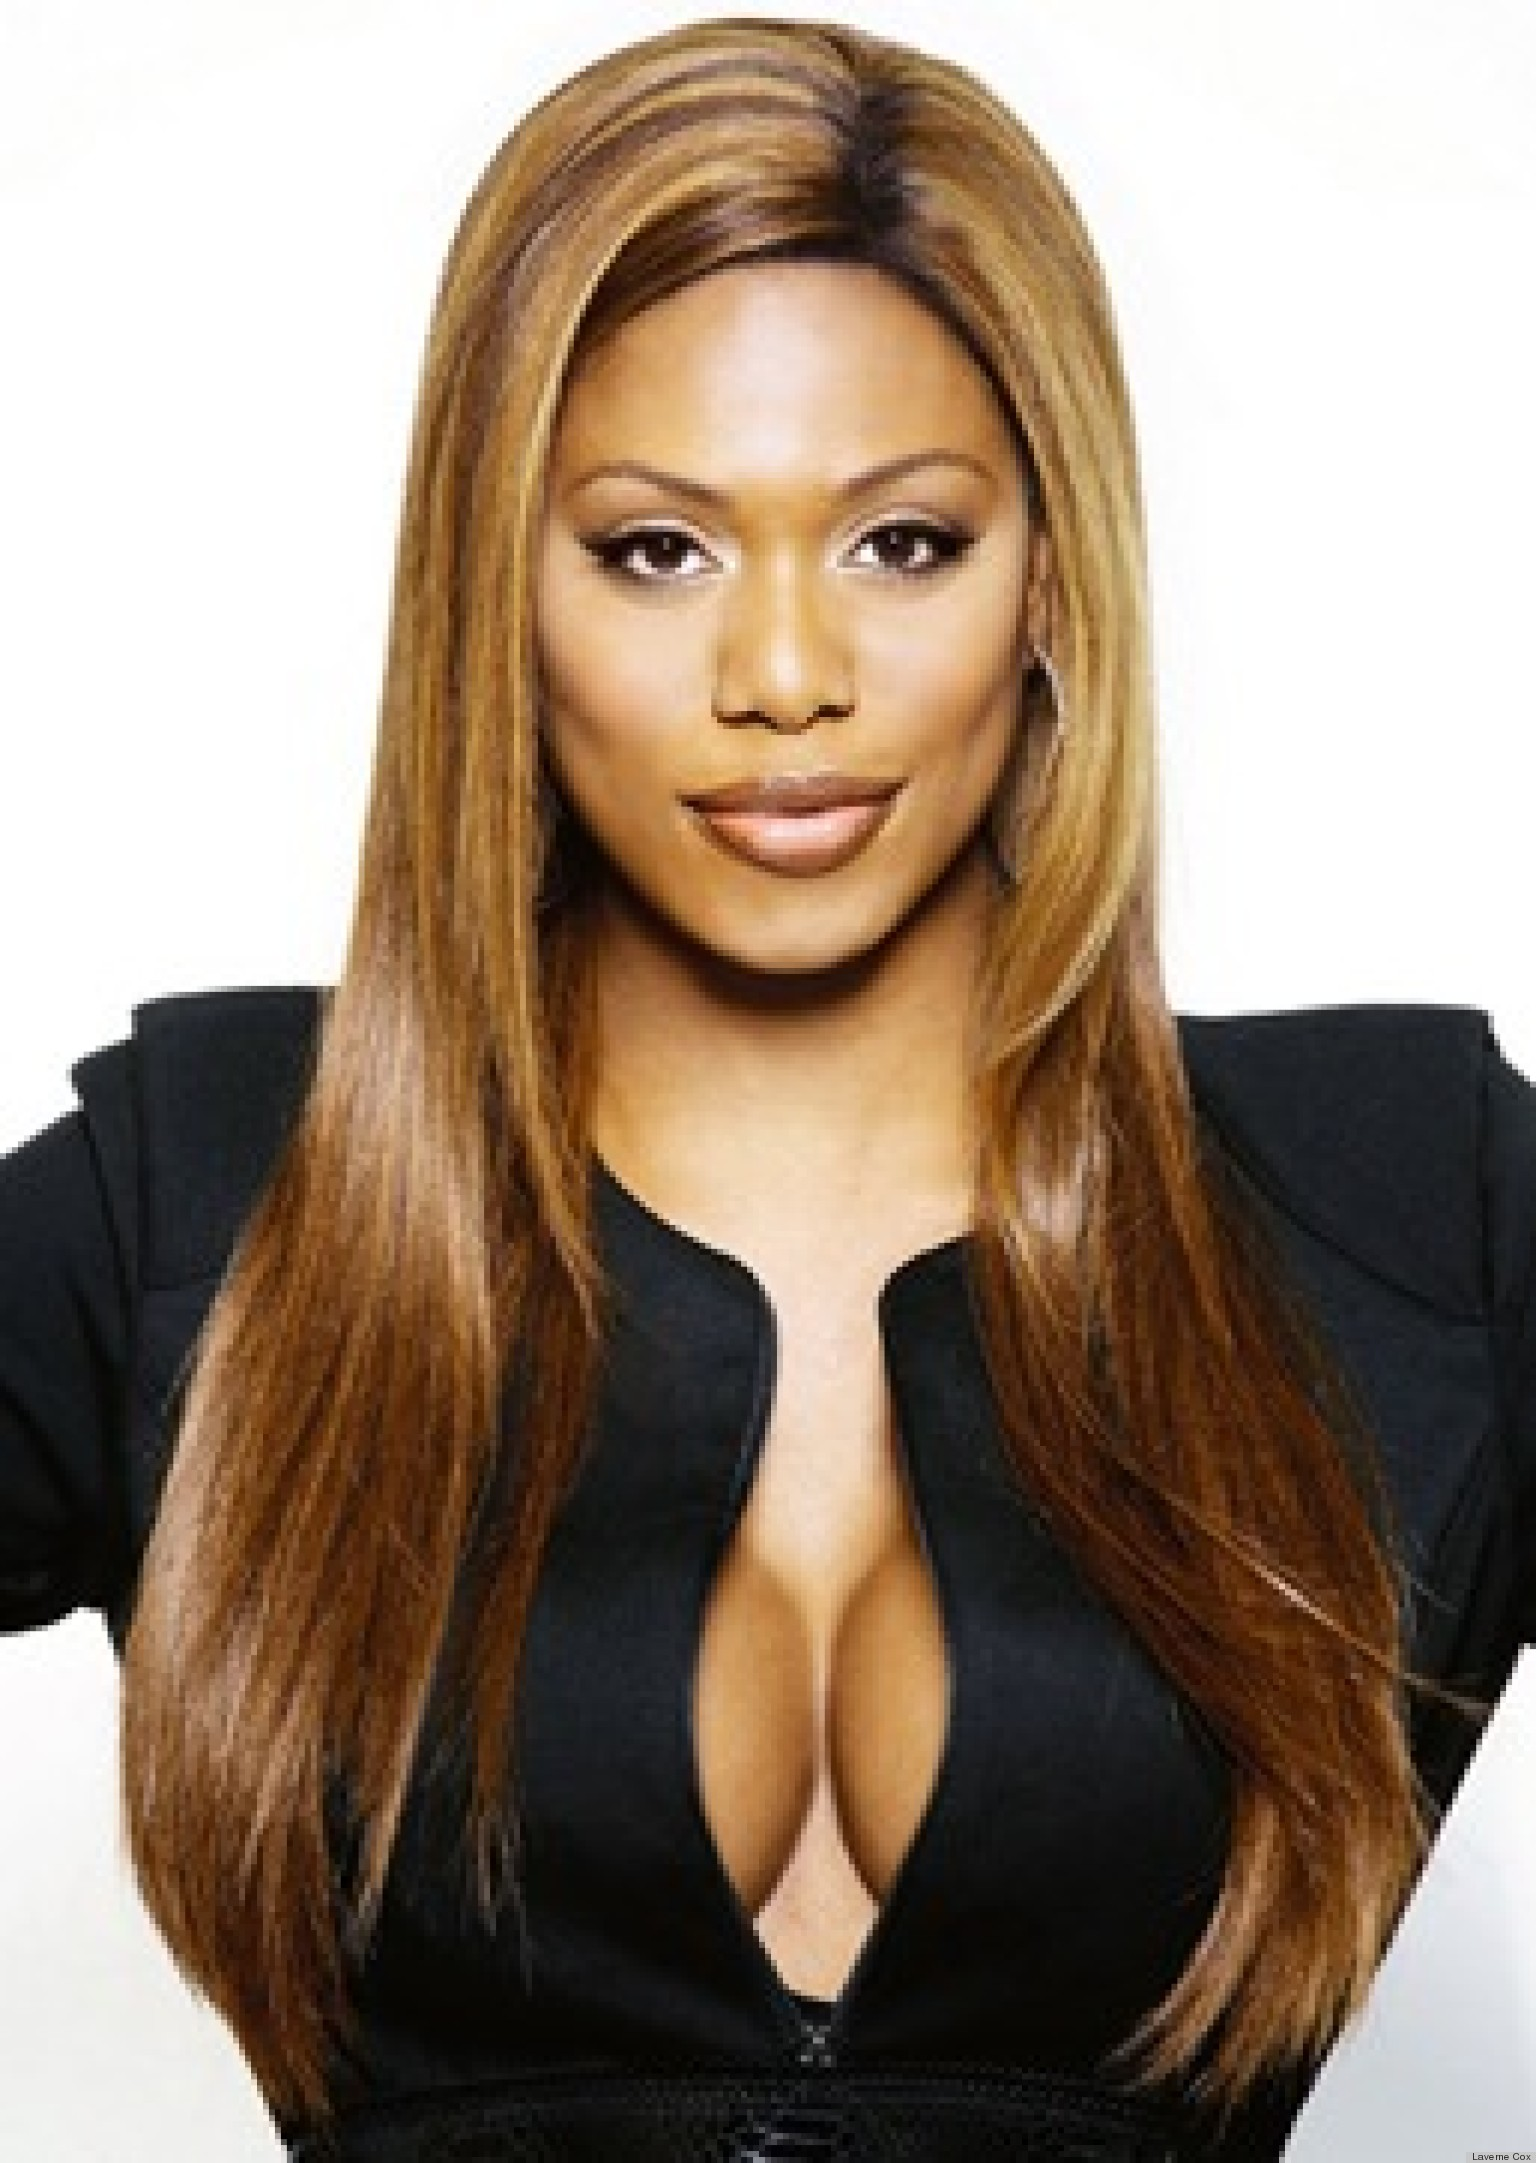 Gorgeous New Season Nail Art Ideas: Laverne Cox, Actress And Trans Activist, Discusses Her New